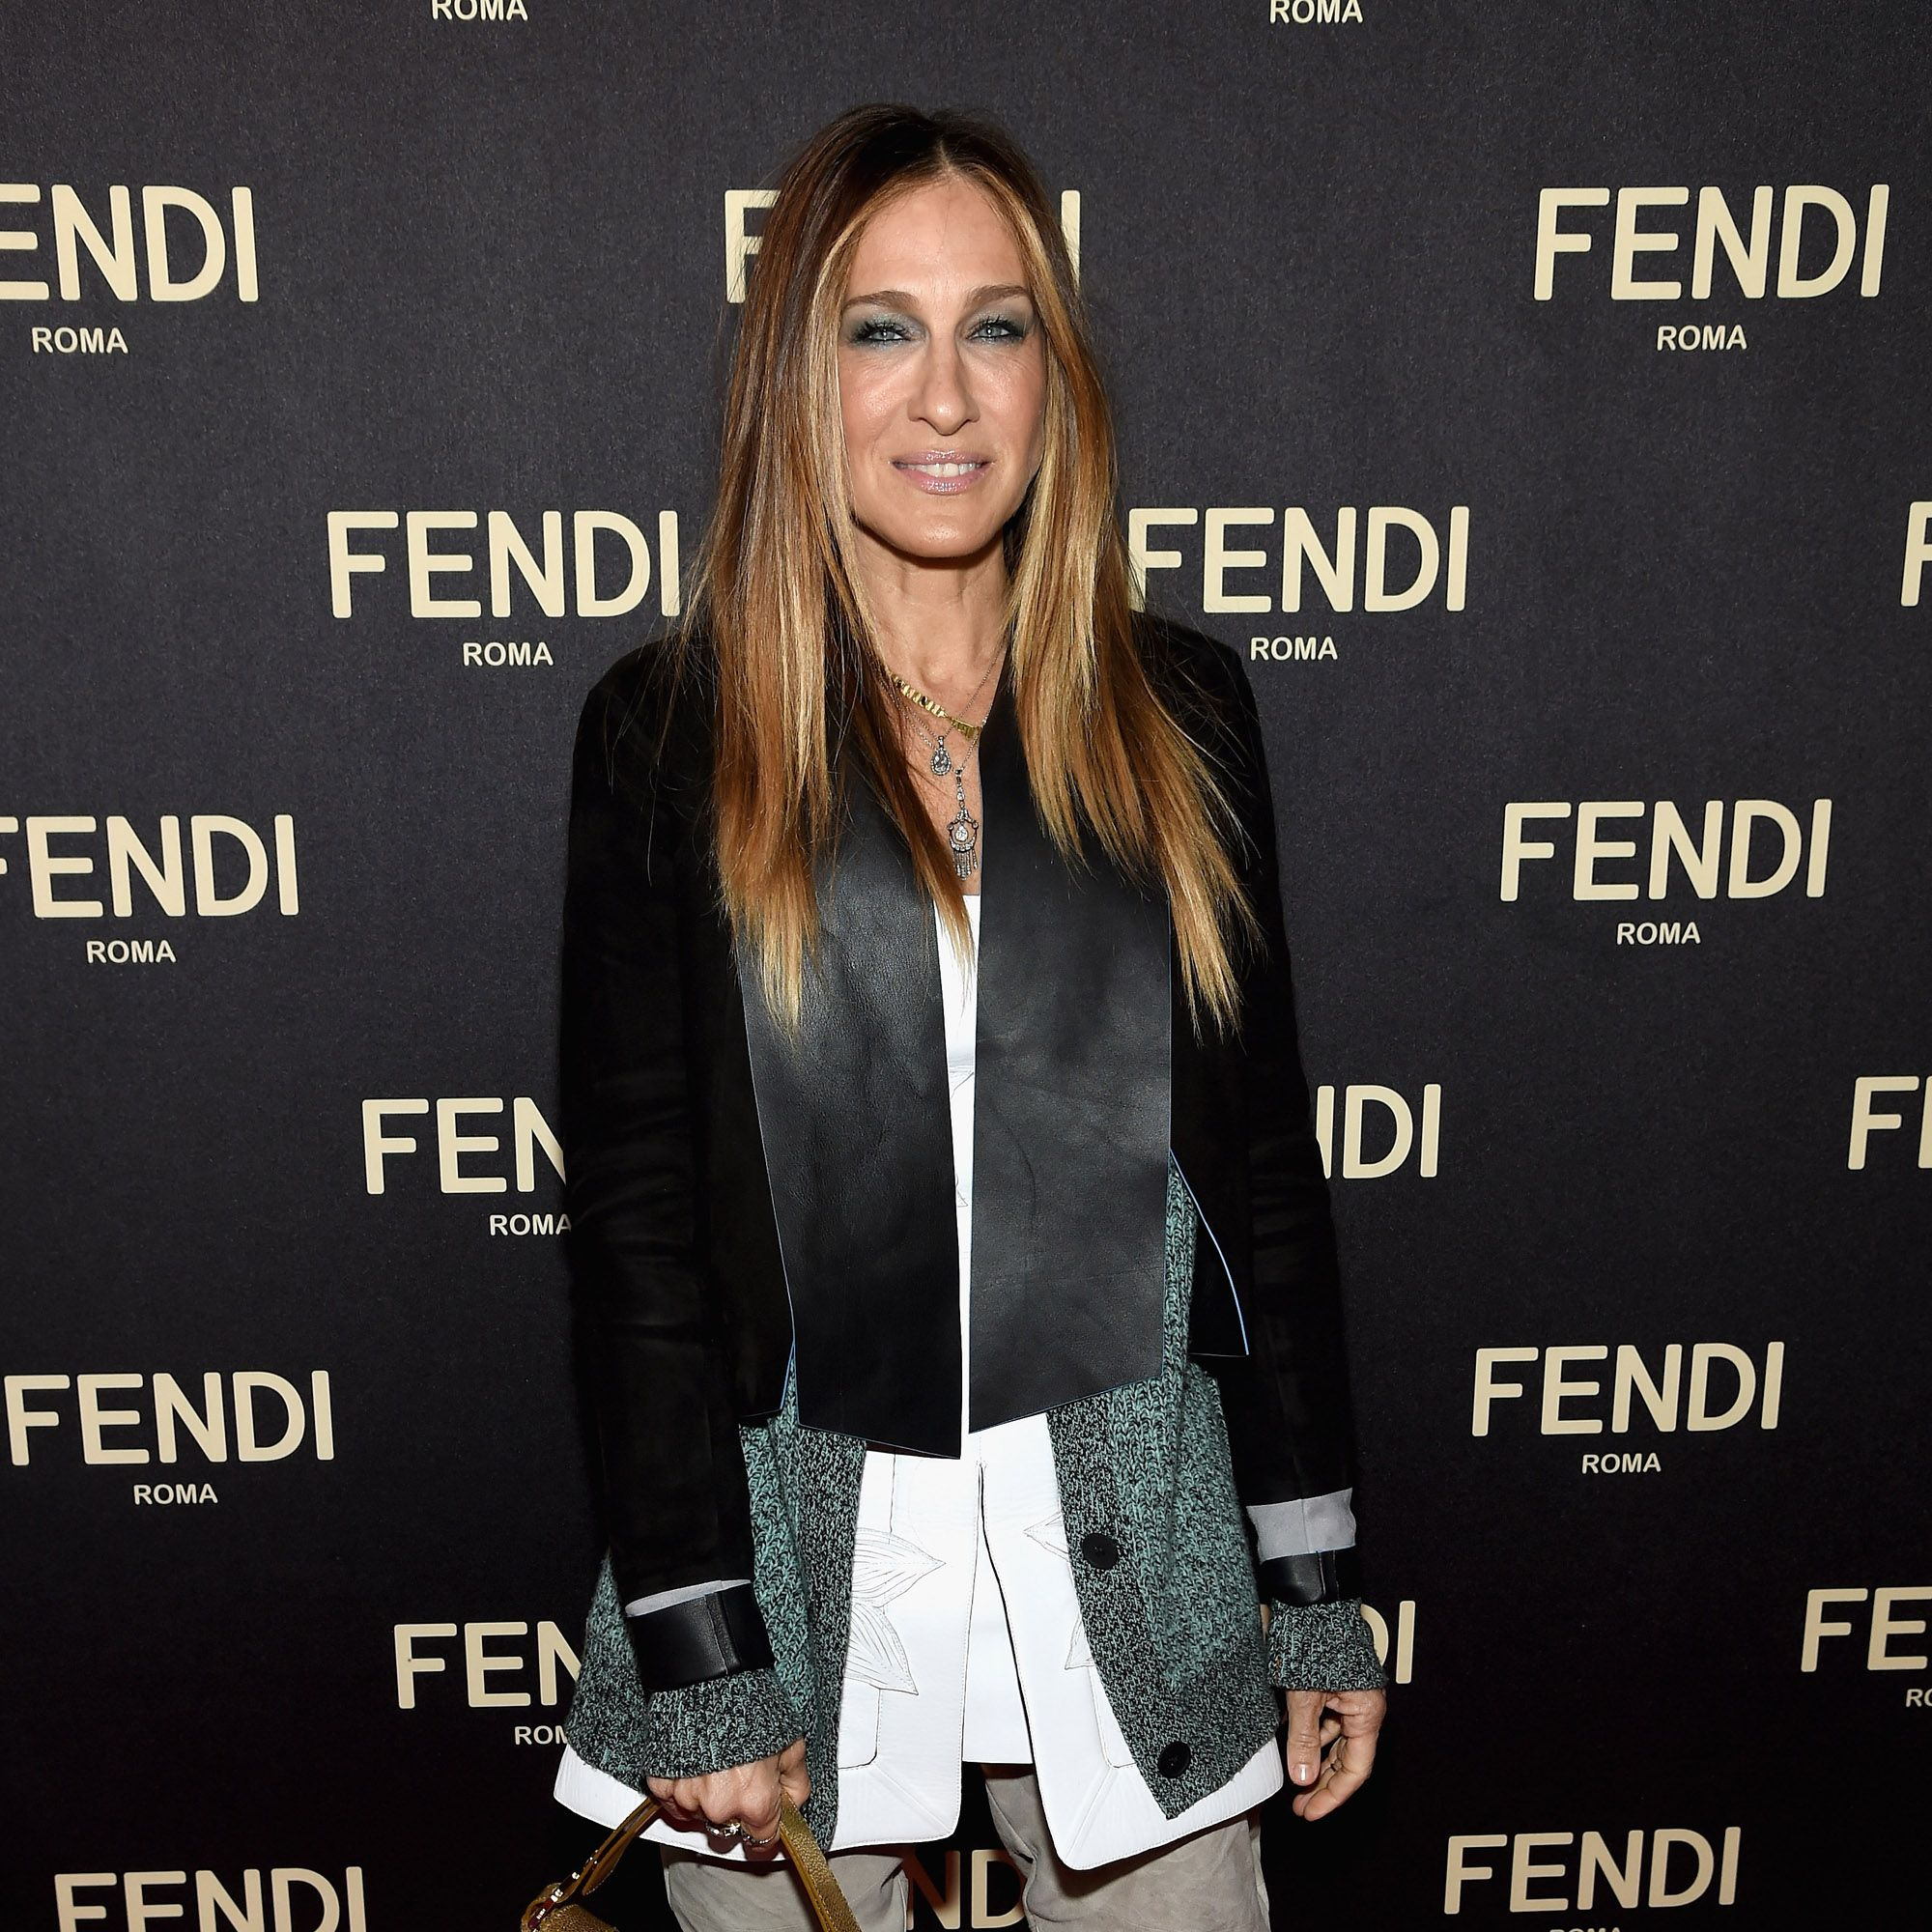 NEW YORK, NY - FEBRUARY 13:  Sarah Jessica Parker attends FENDI celebrates the opening of the New York flagship store on February 13, 2015 in New York City.  (Photo by Dimitrios Kambouris/Getty Images for FENDI)